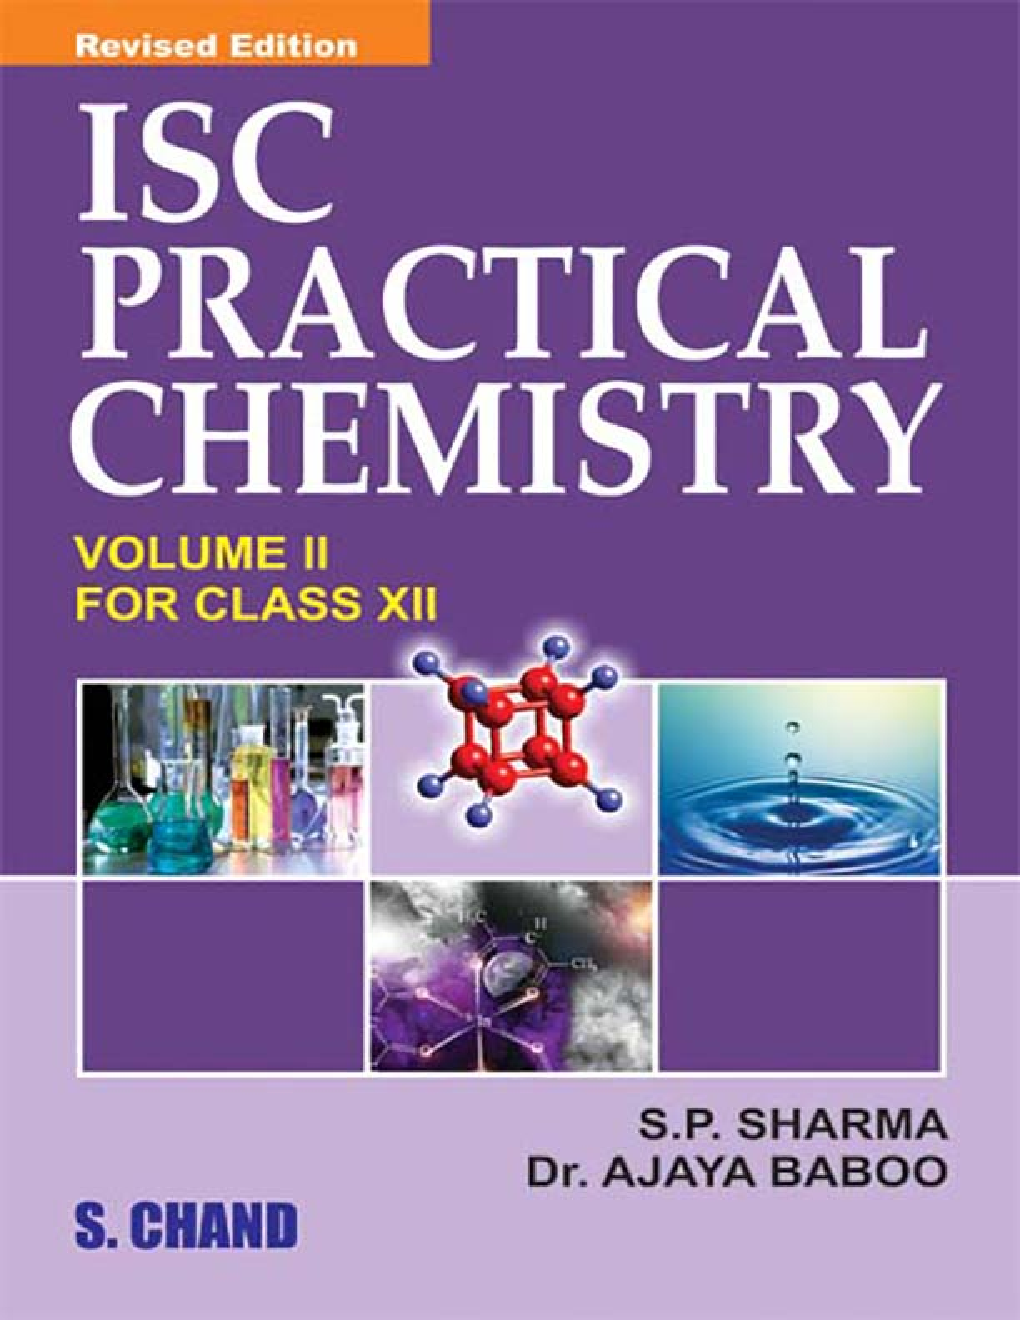 ISC Practical Chemistry Volume 2 For Class XII - Page 1